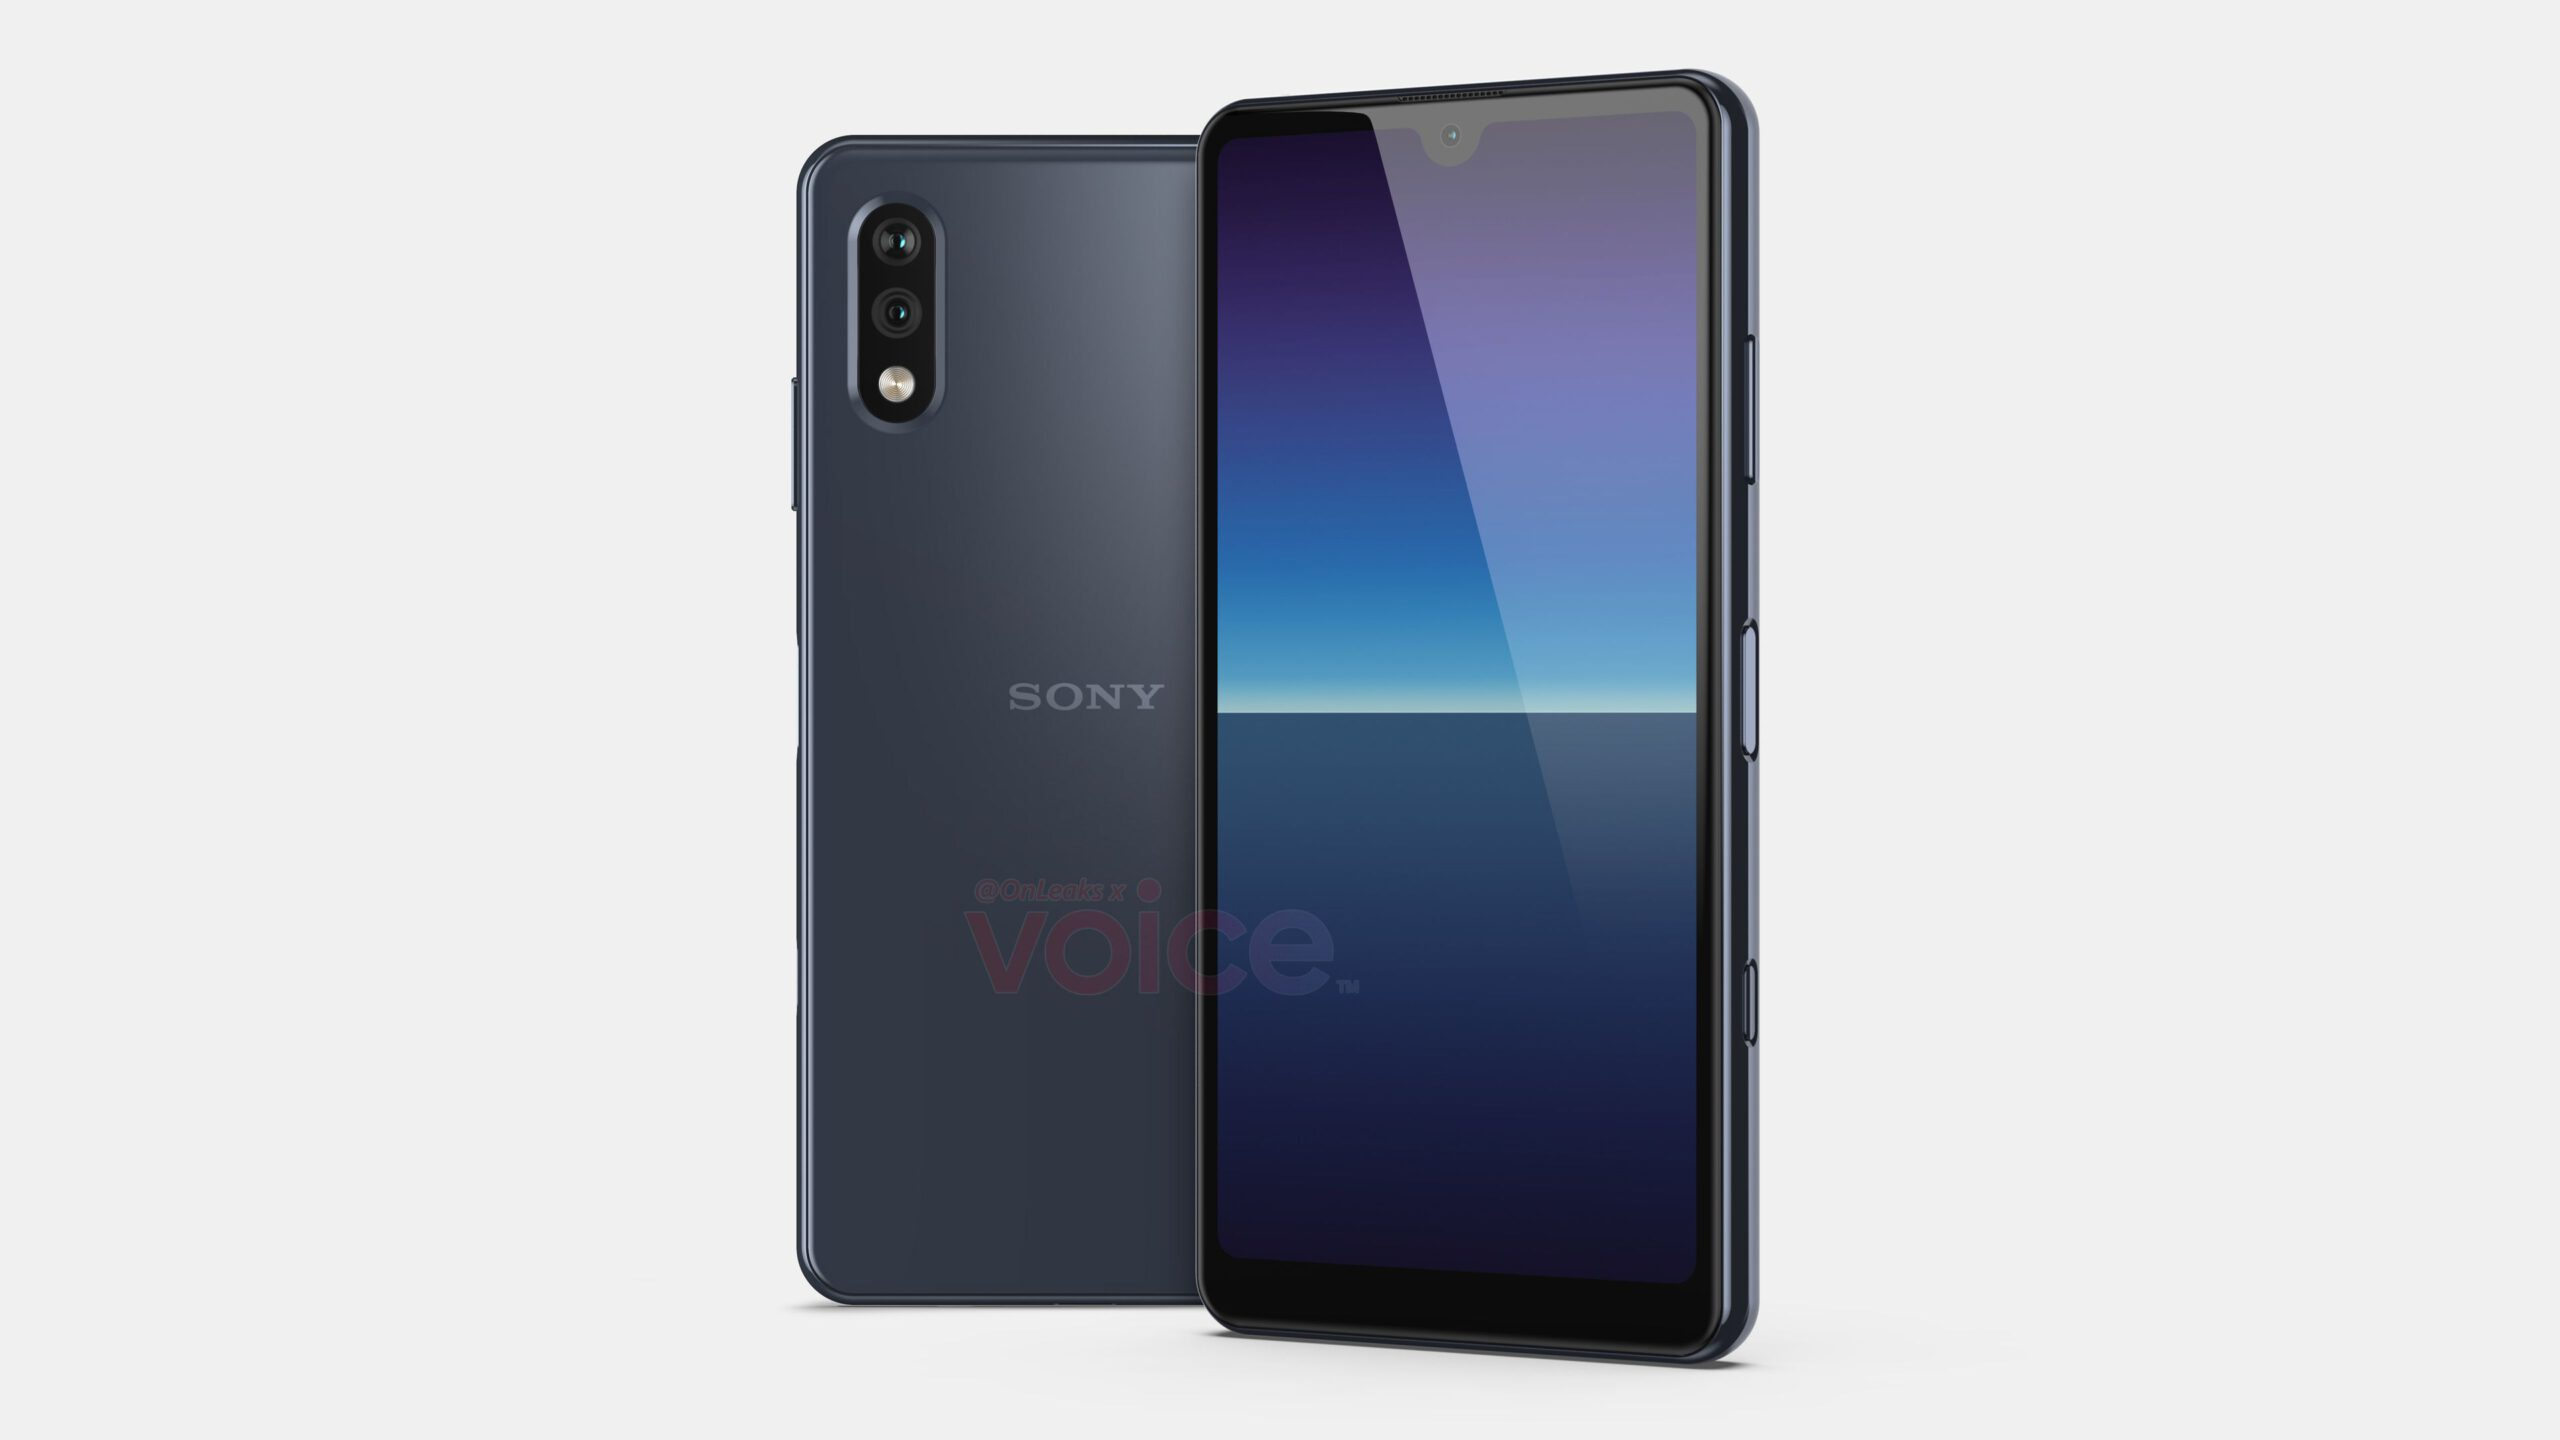 Sony Xperia Compact